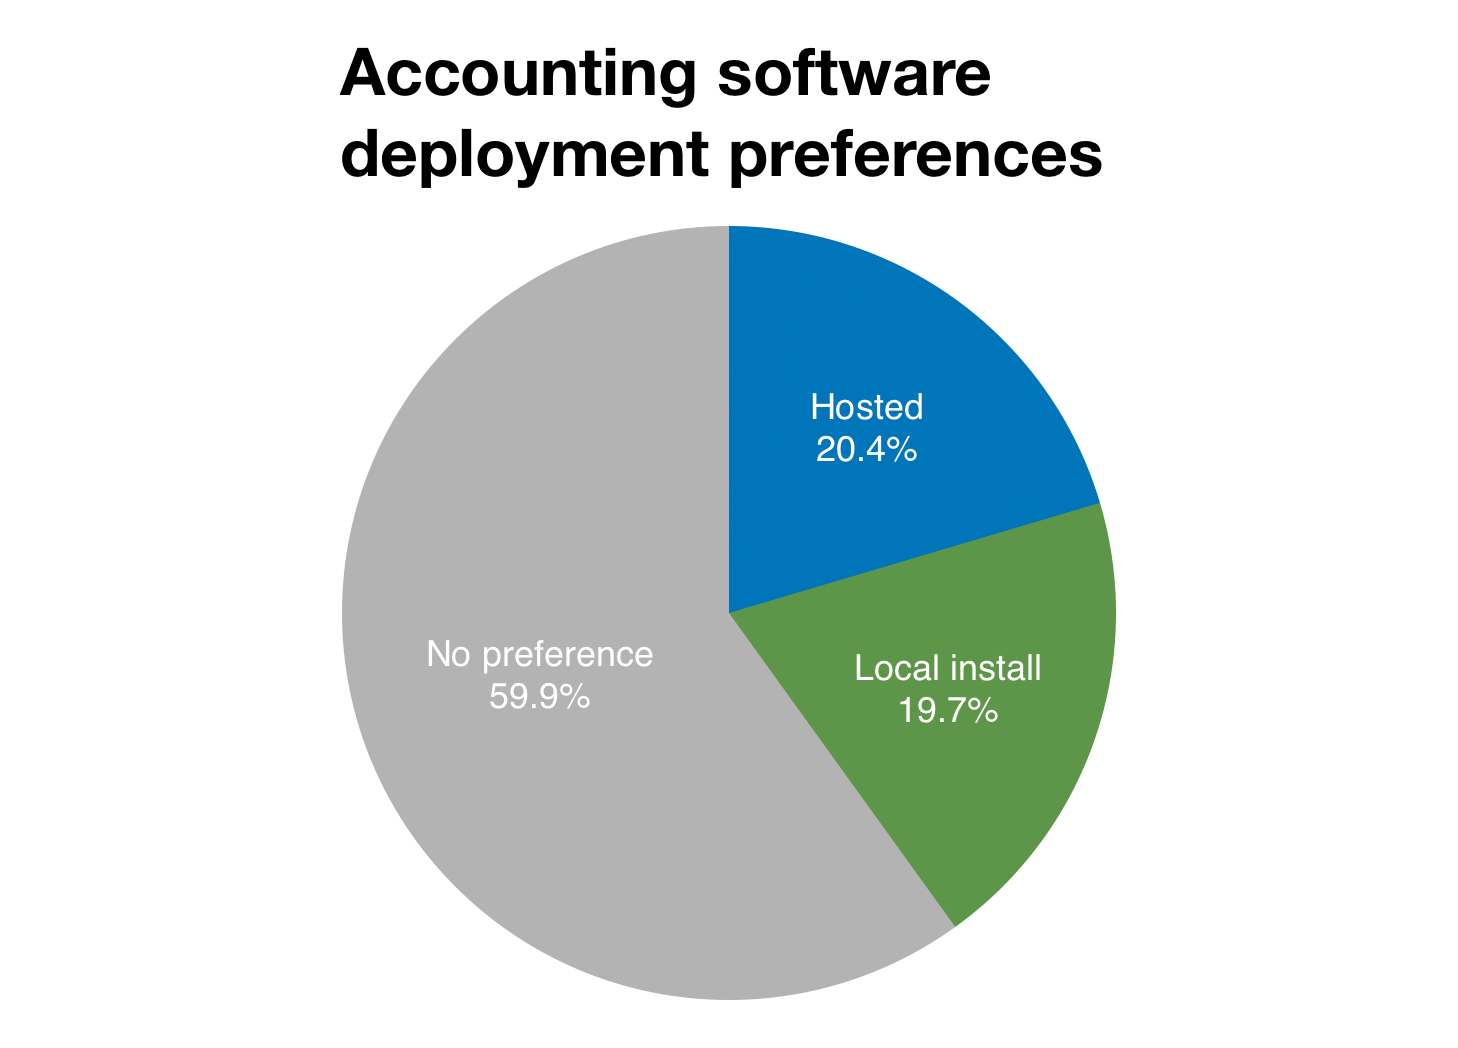 Chart of deployment preferences for accounting software